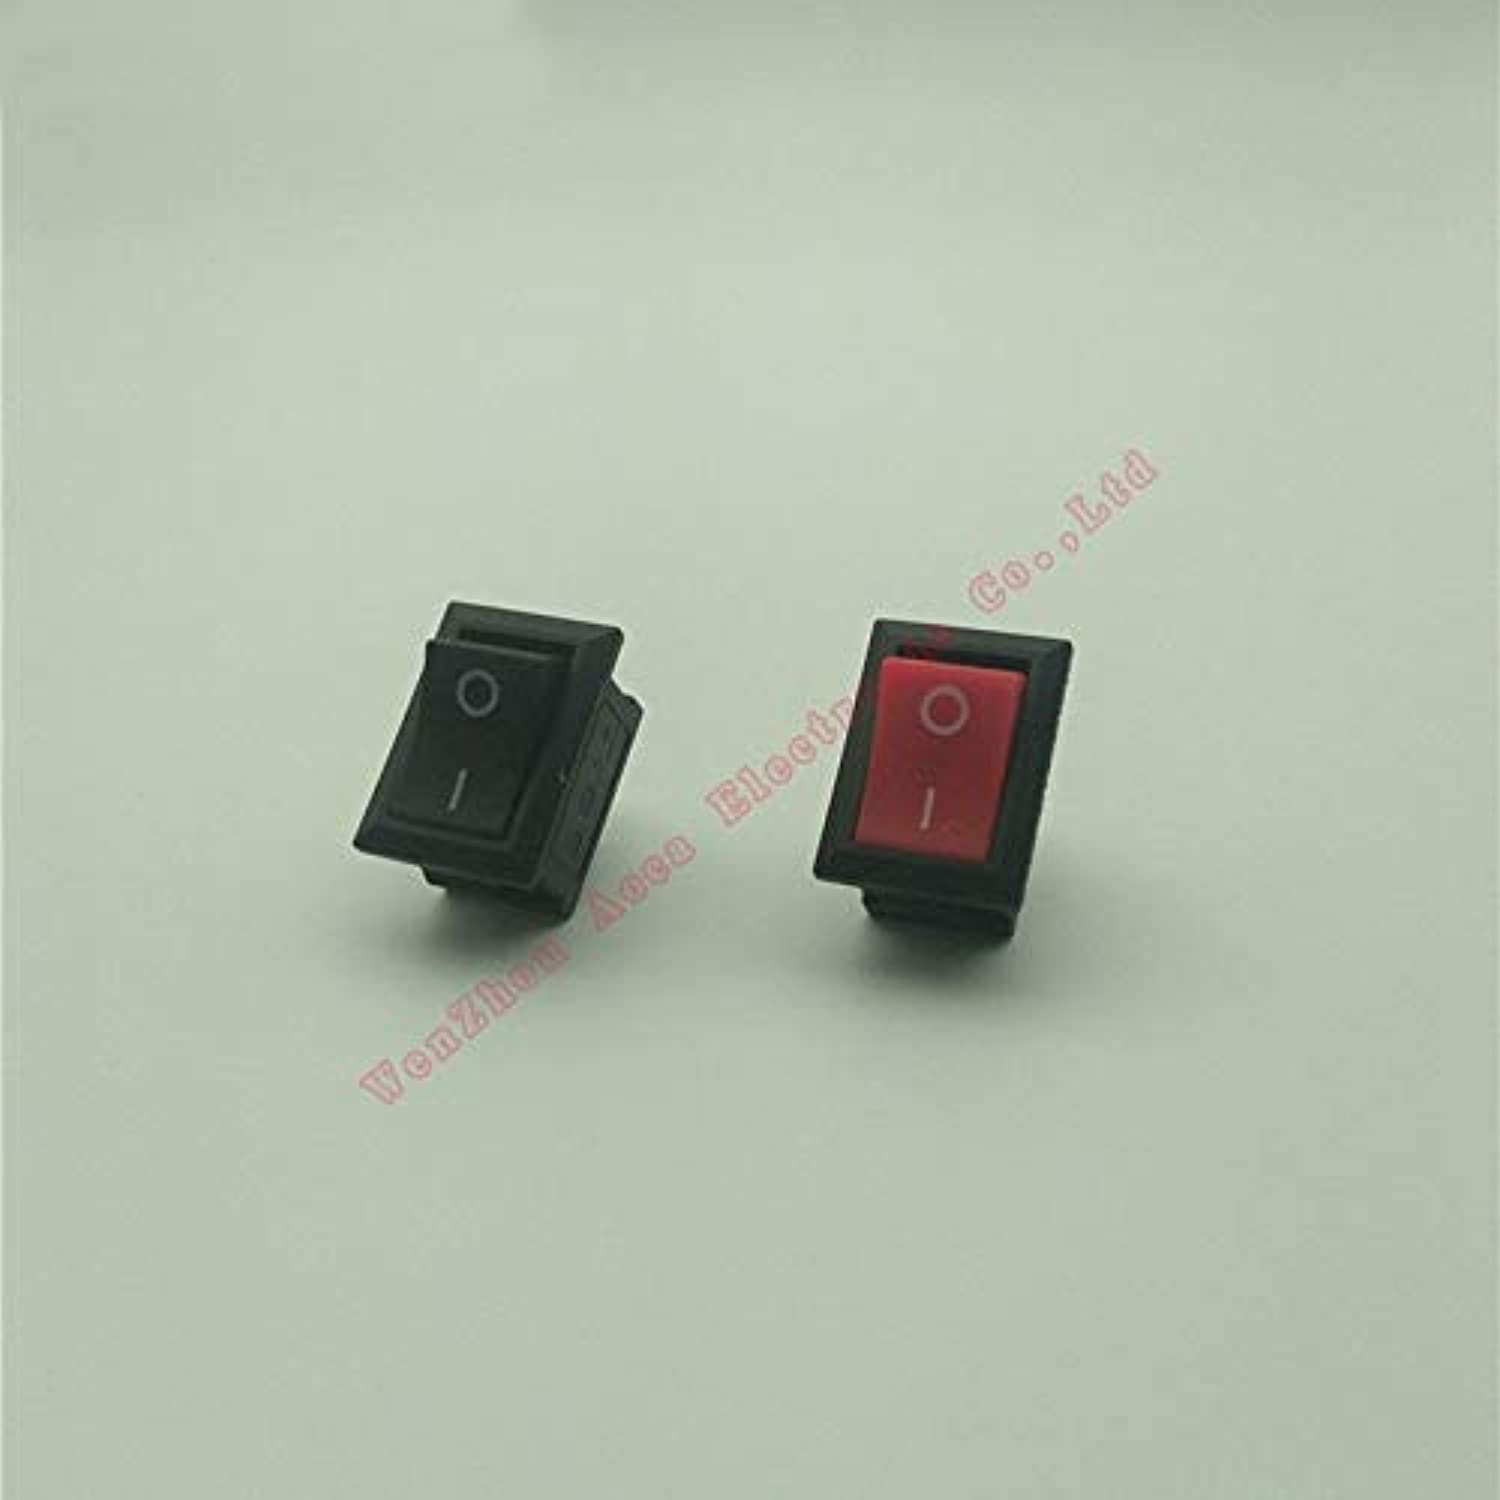 100pcs 2 Positions ONOff Rocker Switch 2 Pin Copper Feet 250V 6A 125V 10A Red Black  (color  Red)